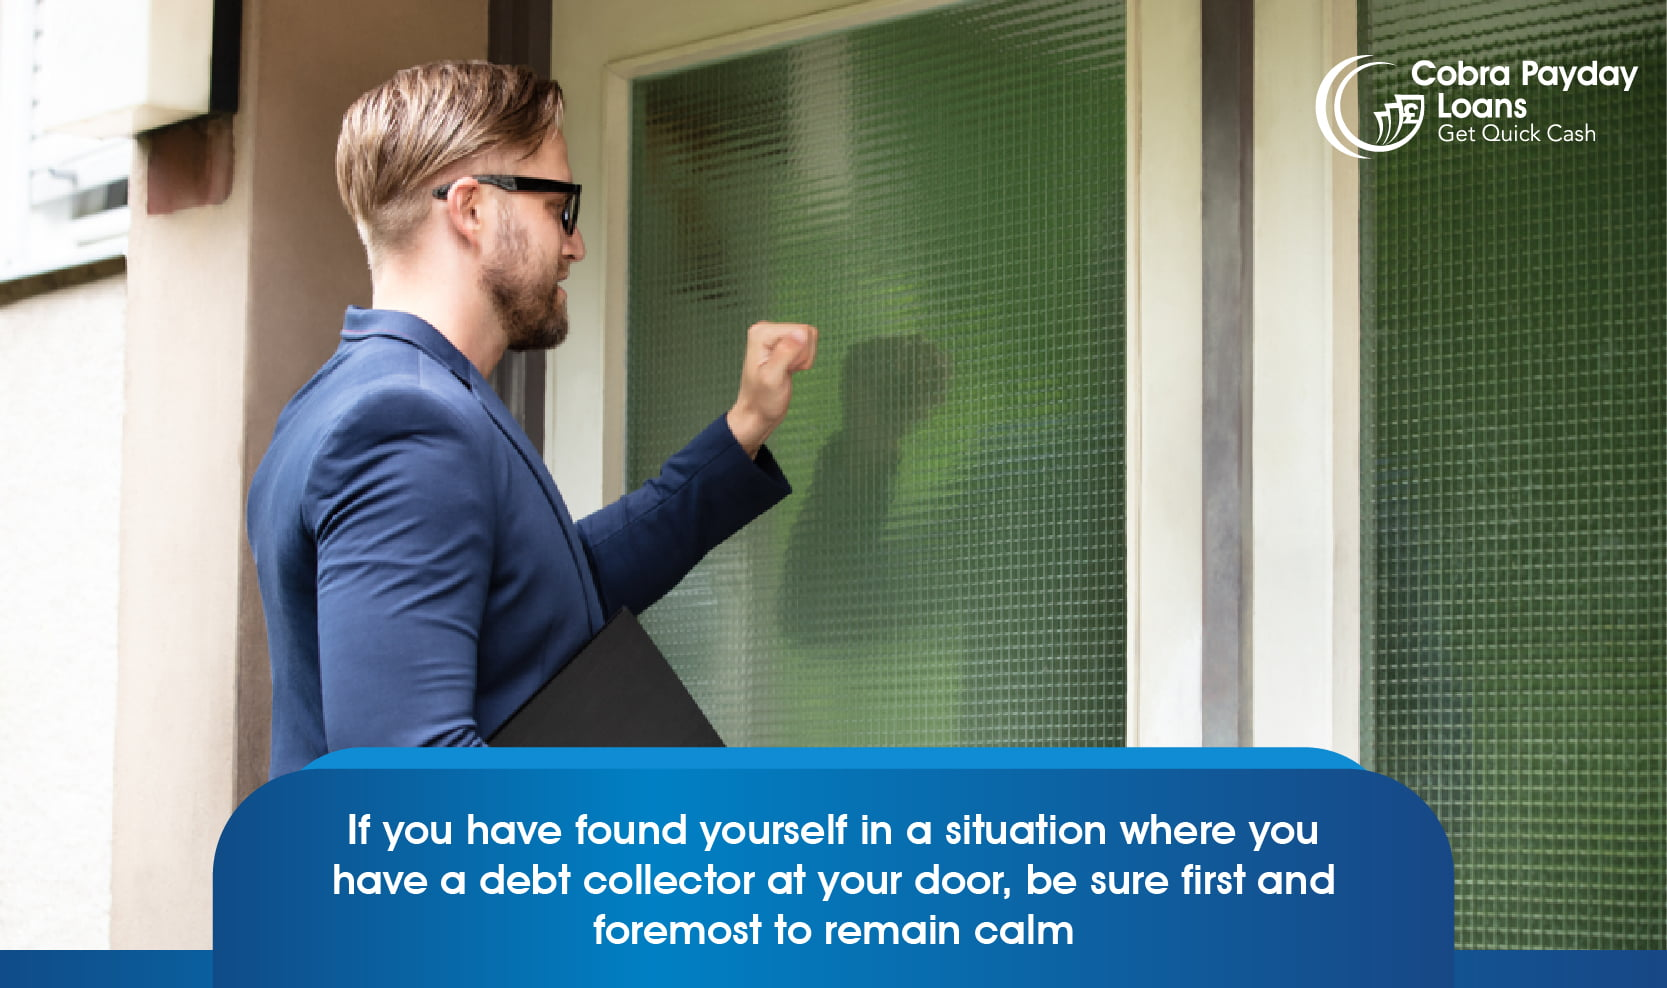 Remain calm if a debt collector is at your door